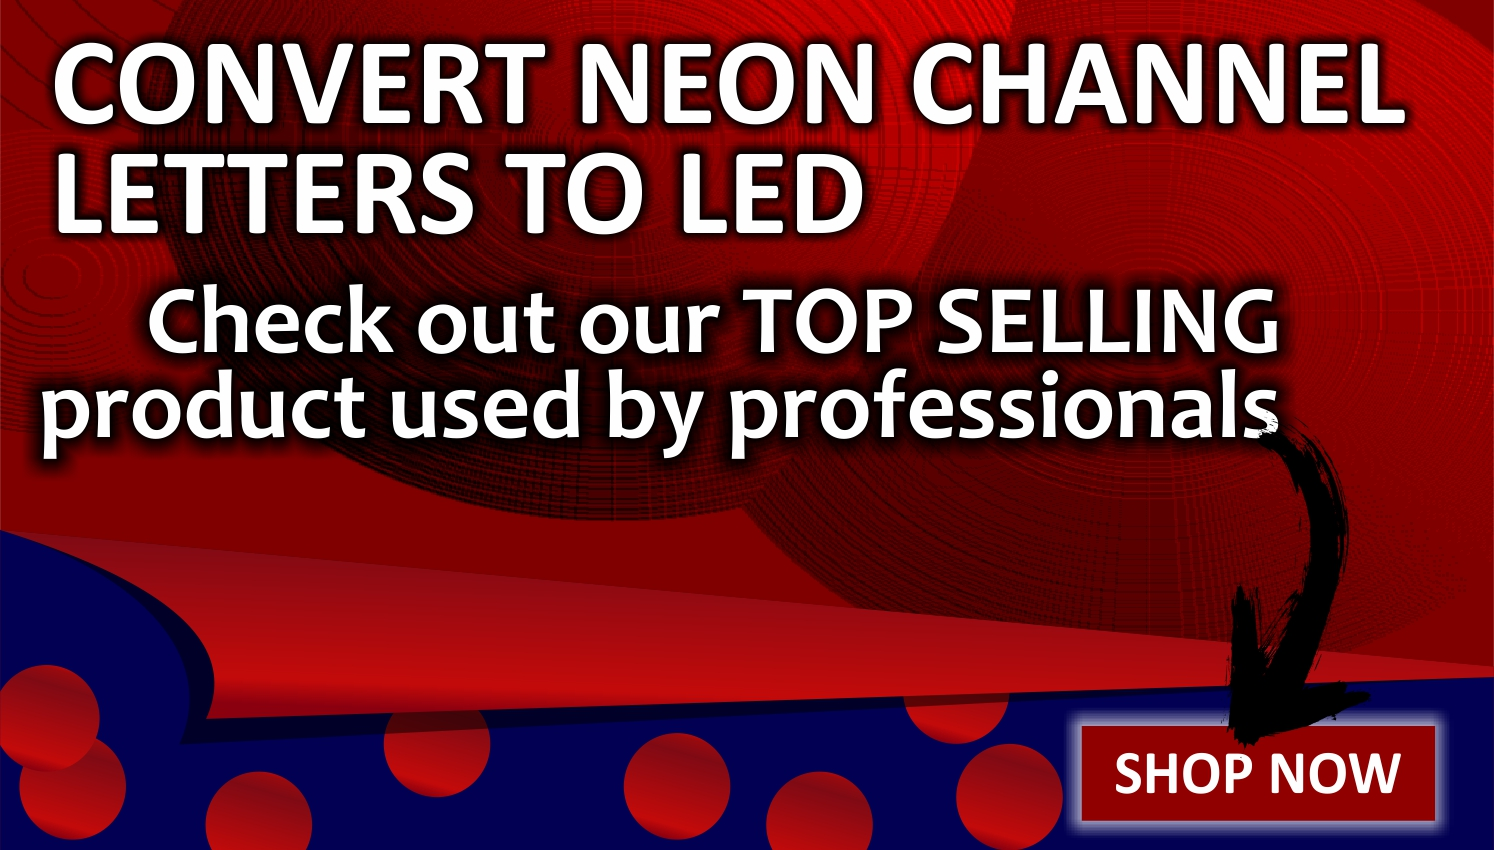 Convert Neon Channel Letters to LED